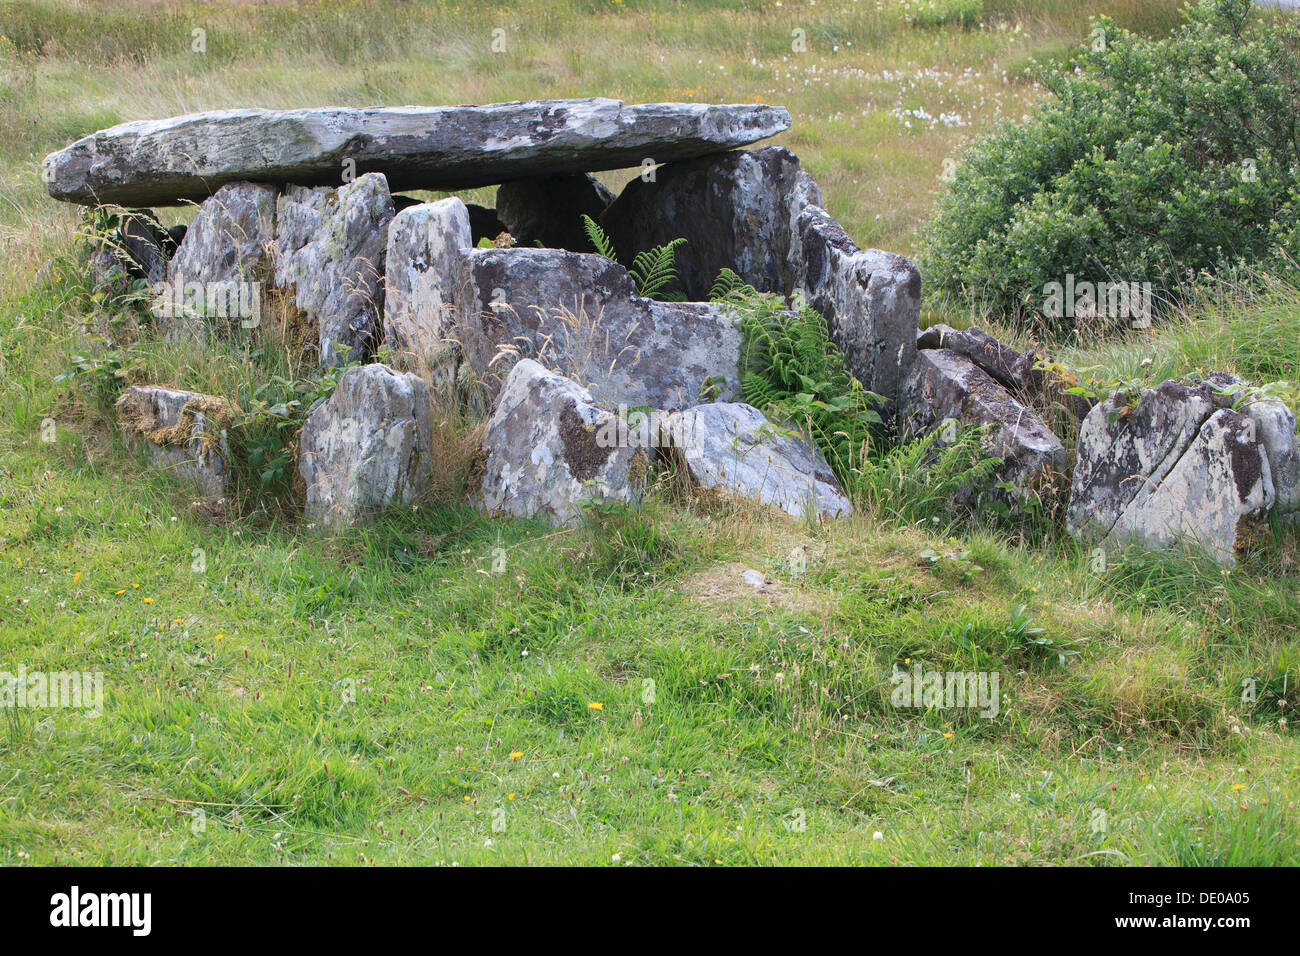 The Yellow River Land megalithic wedge tomb in County Mayo, Ireland - Stock Image